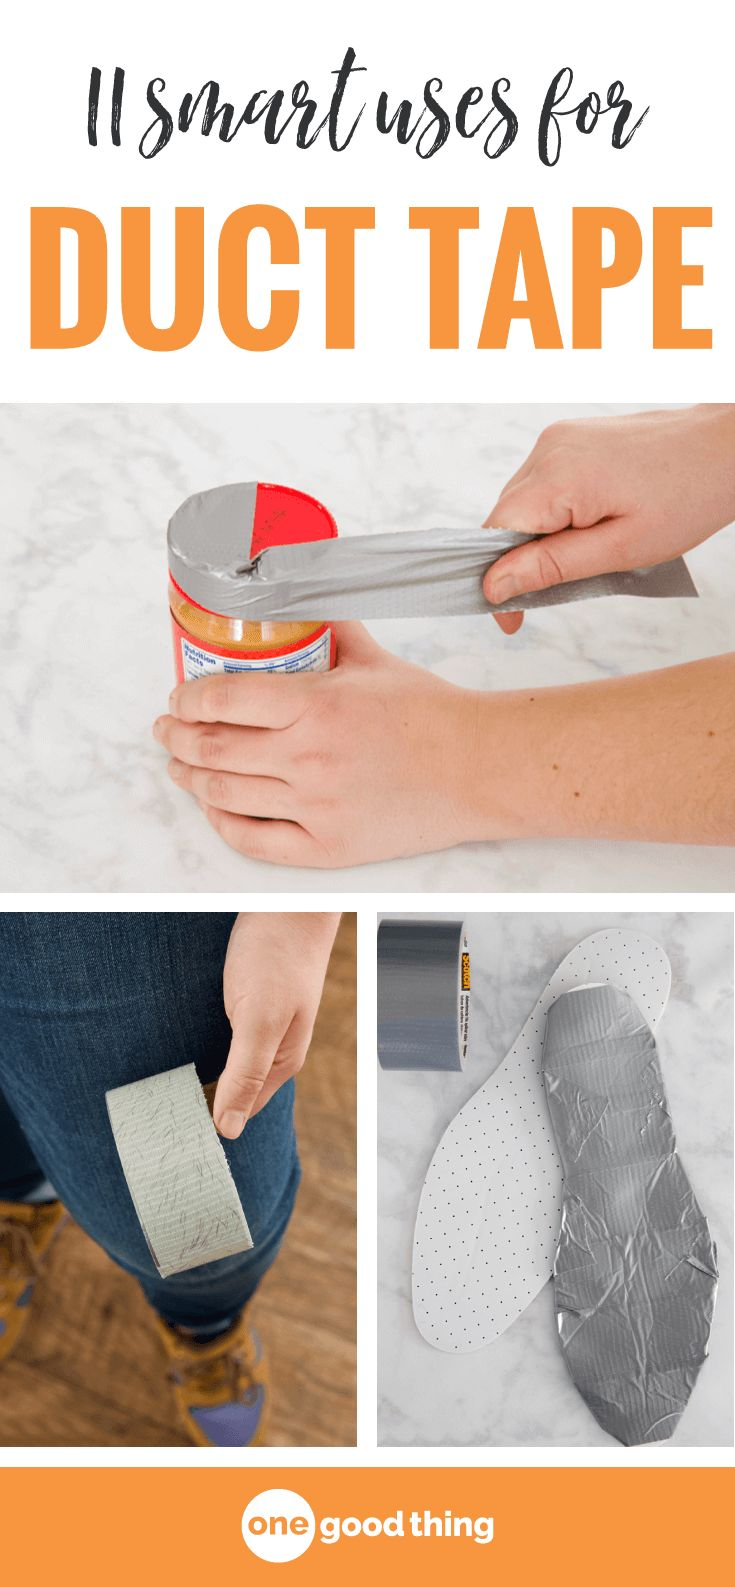 Check out this list of 11 practical ways to use duct tape in your everyday life. This strong and flexible tape can solve all kinds of problems! #ducttape #tipsandtricks #lifehacks